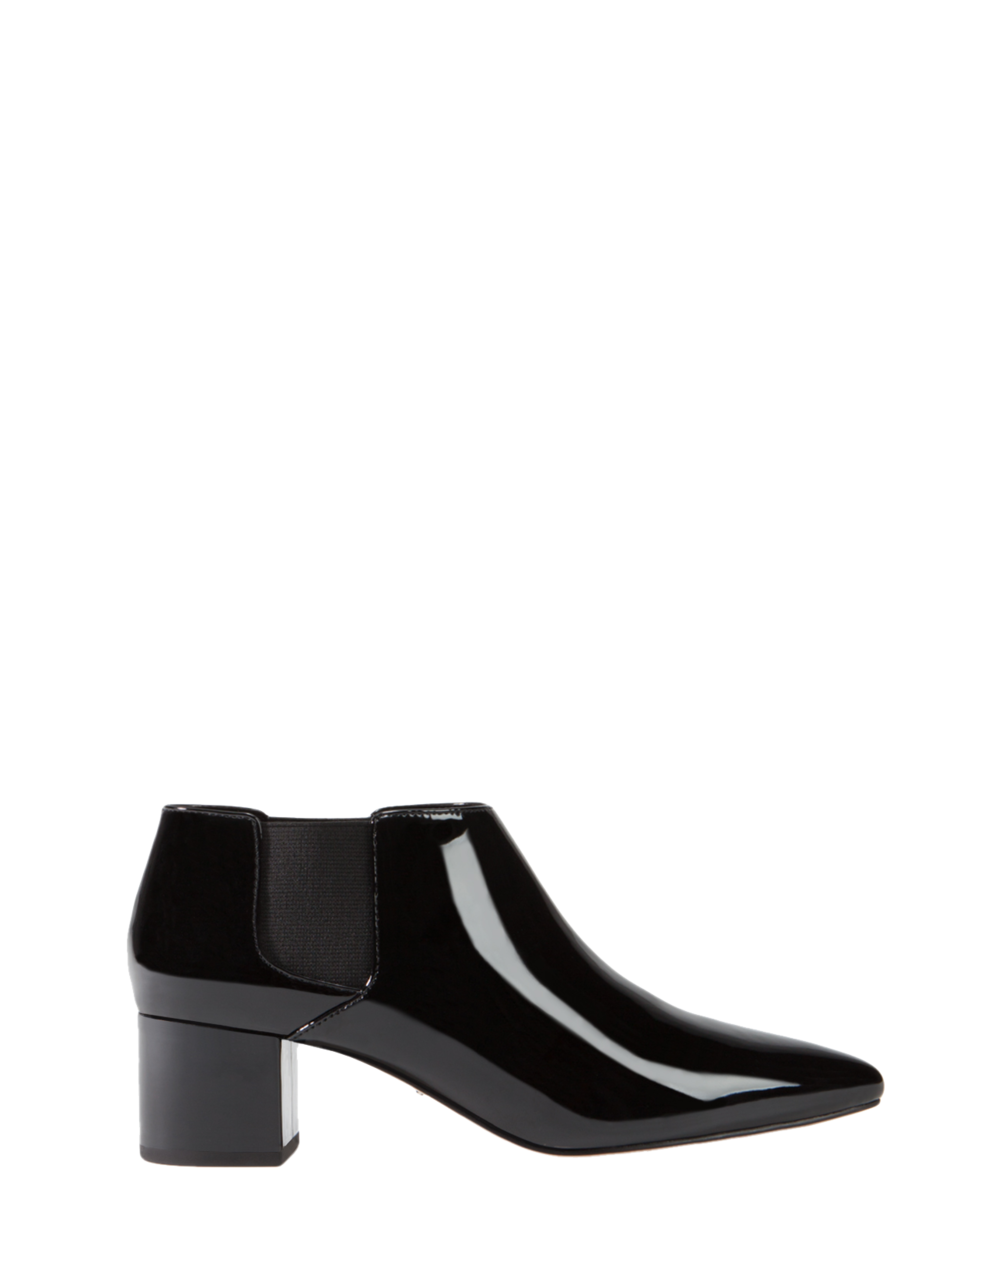 Stradivarius_fw15_shoes (12).png